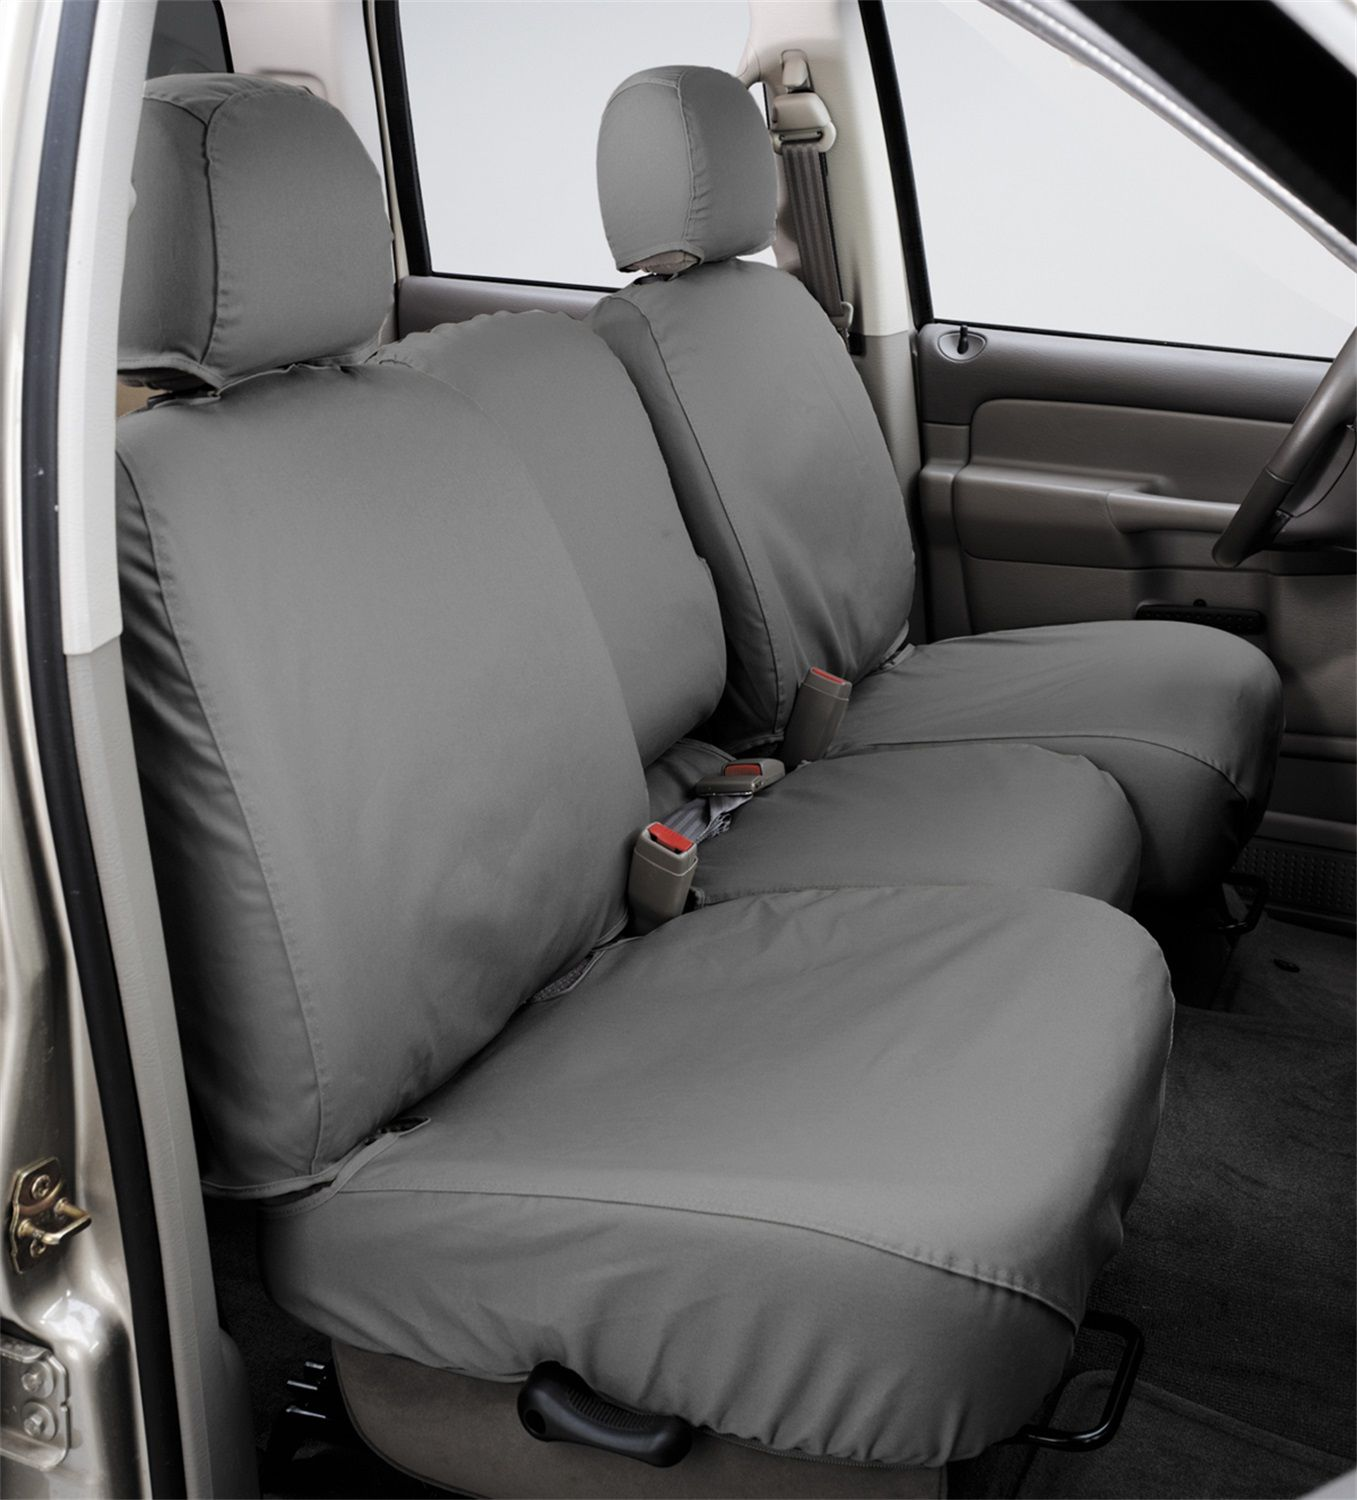 Magnificent Ram 1500 Seat Cover Replacement Covercraft Fia Go Parts Pabps2019 Chair Design Images Pabps2019Com